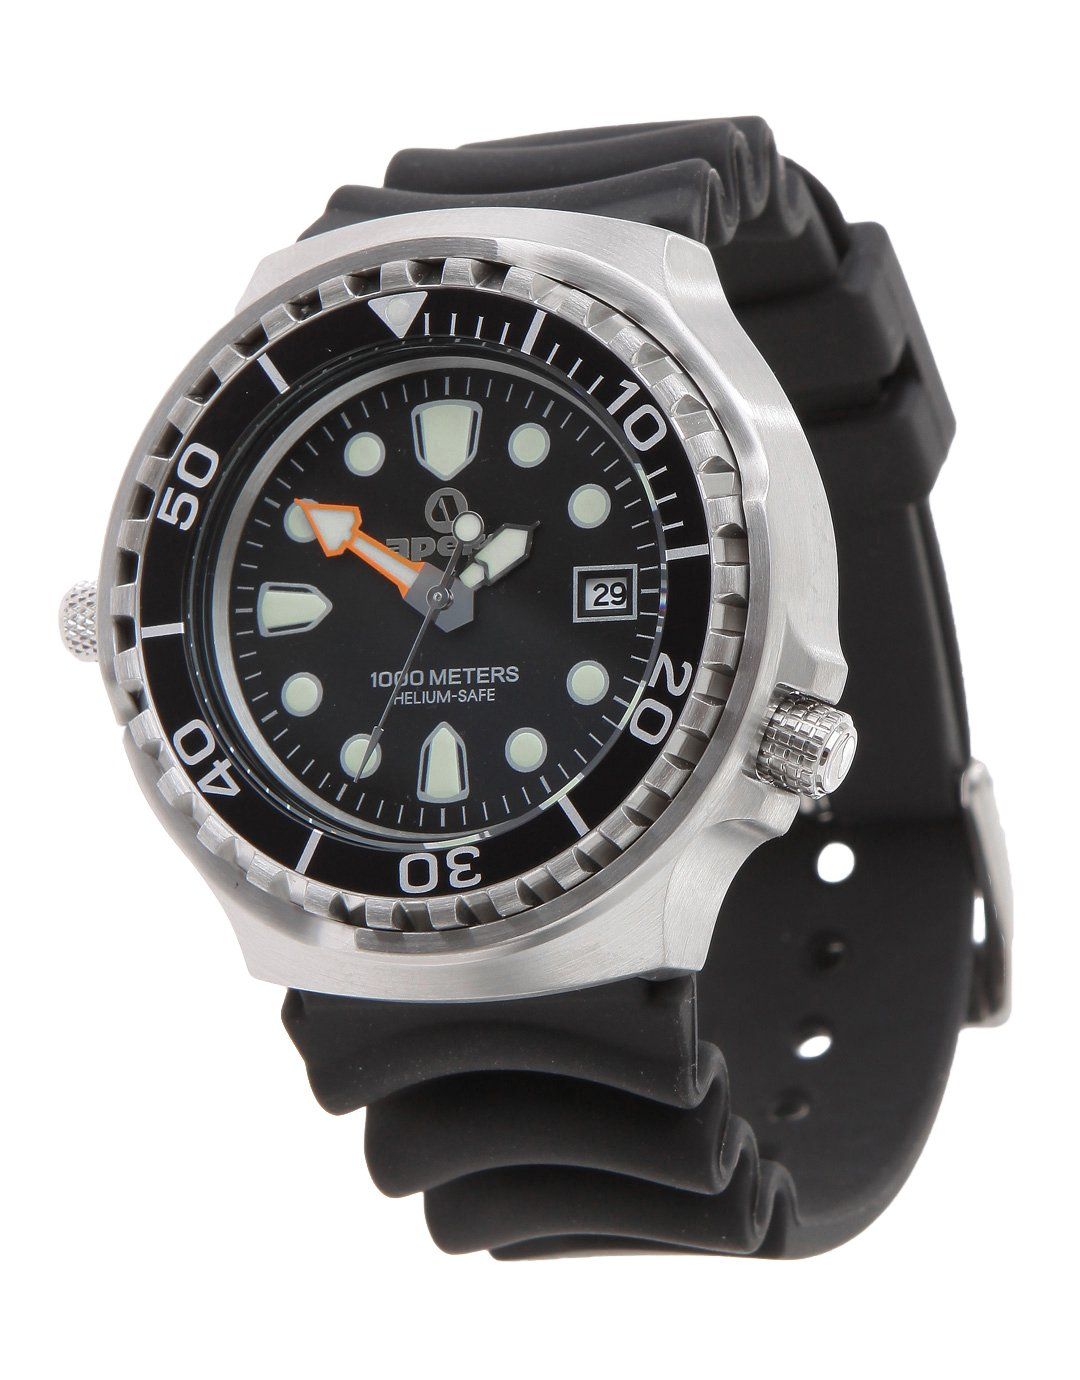 Image of Apeks Divers Watch - 1000m